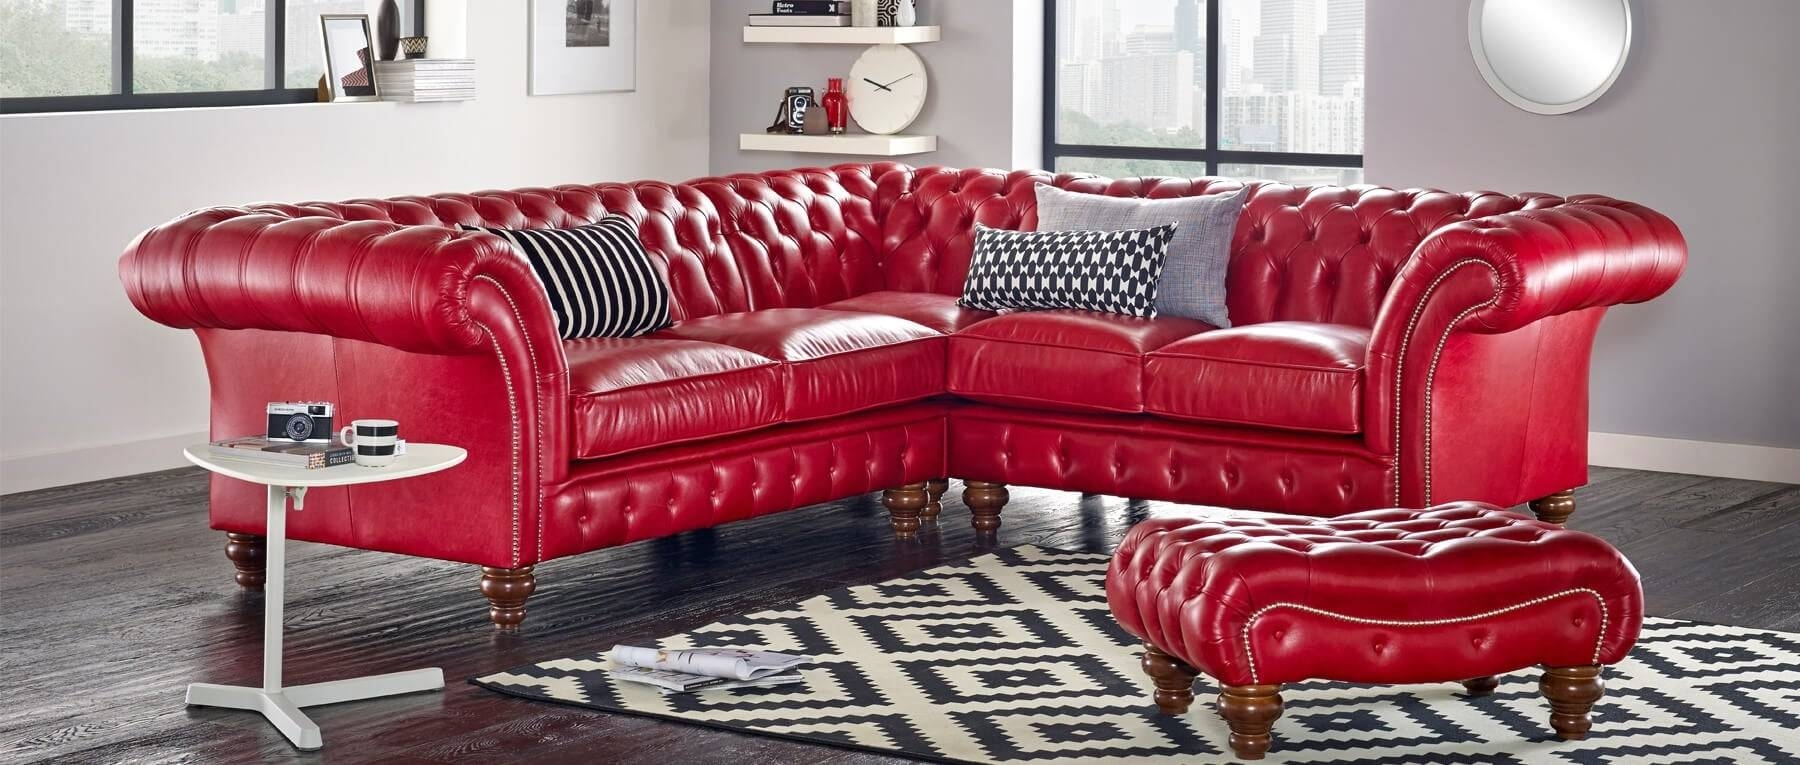 Bespoke Chesterfield Furniture Handmade In Britain | Sofassaxon with Chesterfield Furniture (Image 4 of 30)